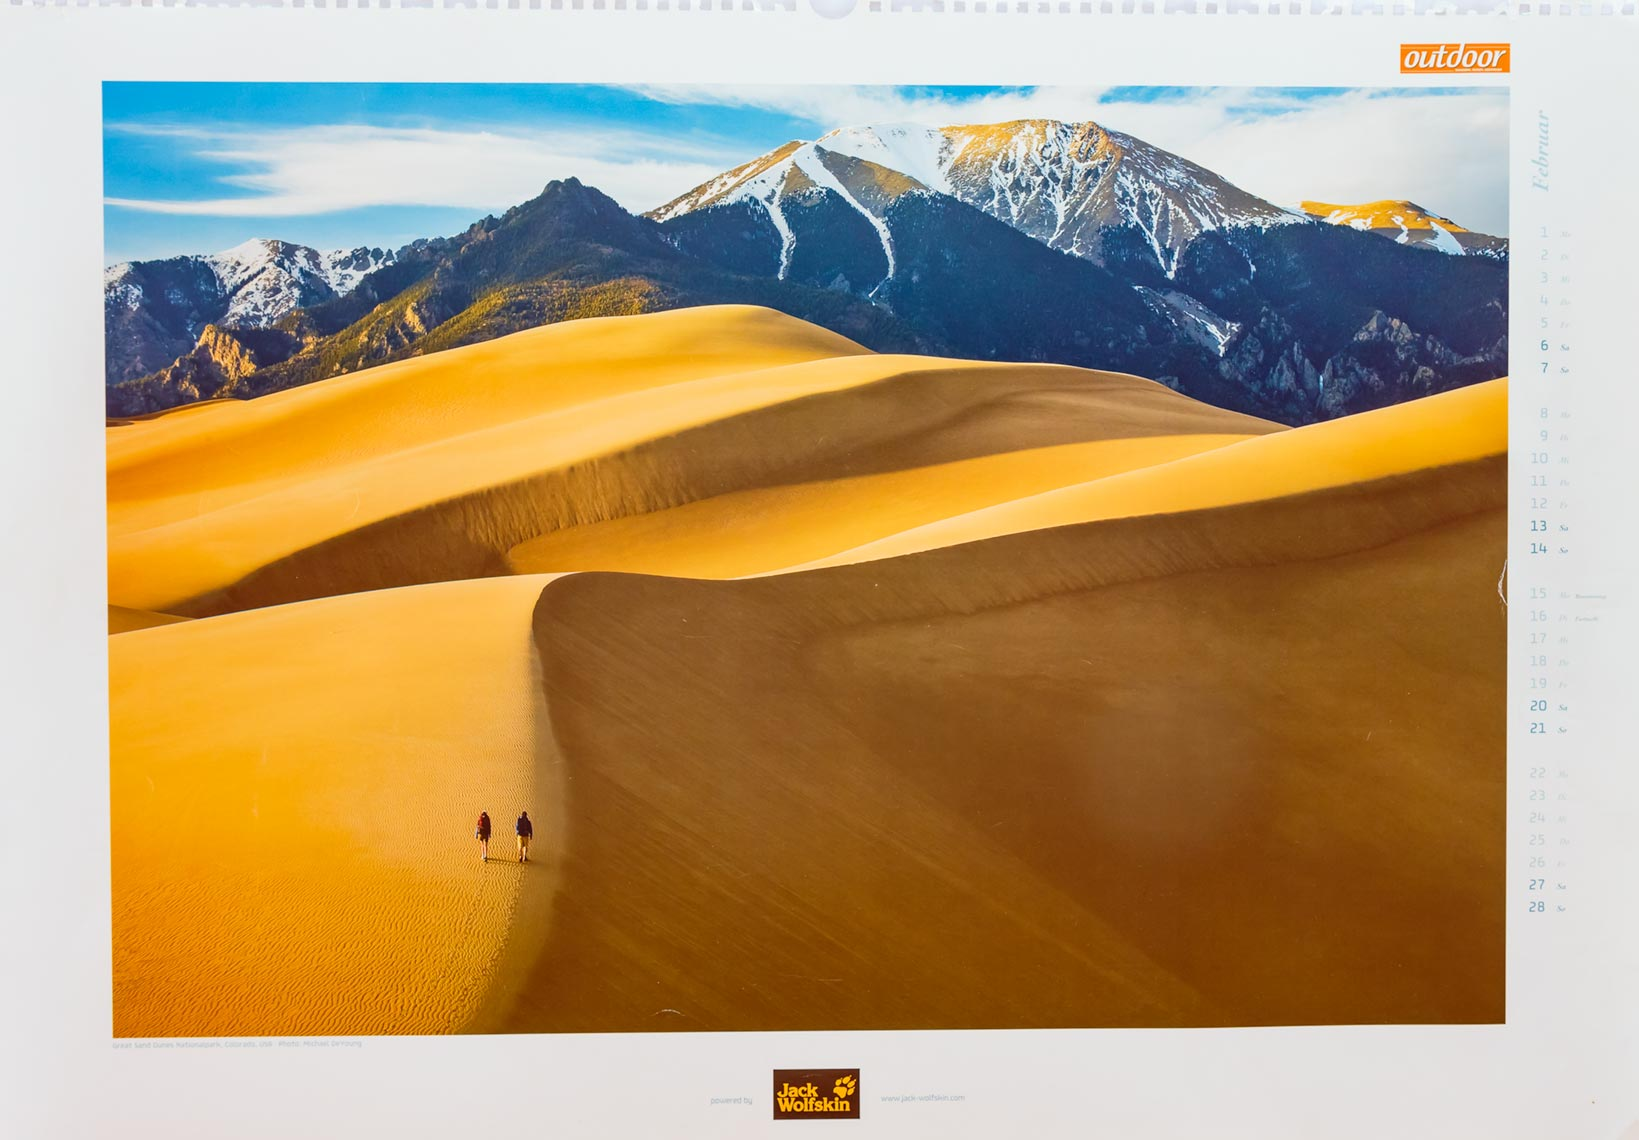 OUTDOOR-Magazin-Calendar-Great-Sand-Dunes